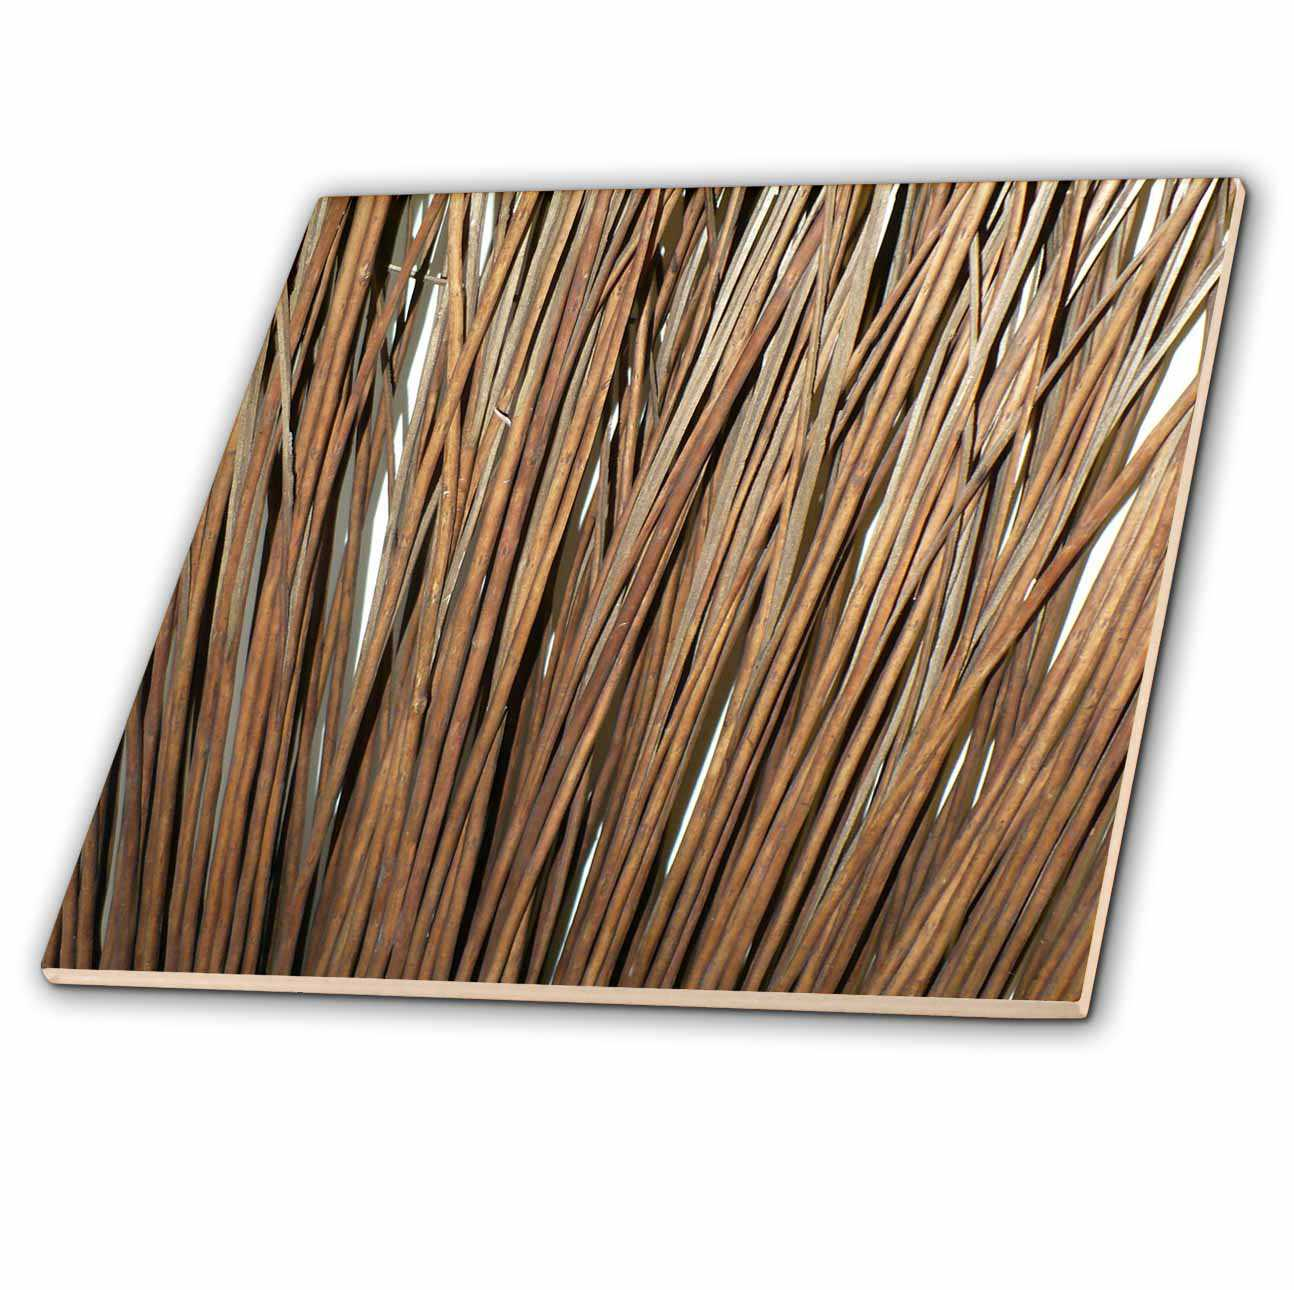 3dRose Twigs - Ceramic Tile, 4-inch